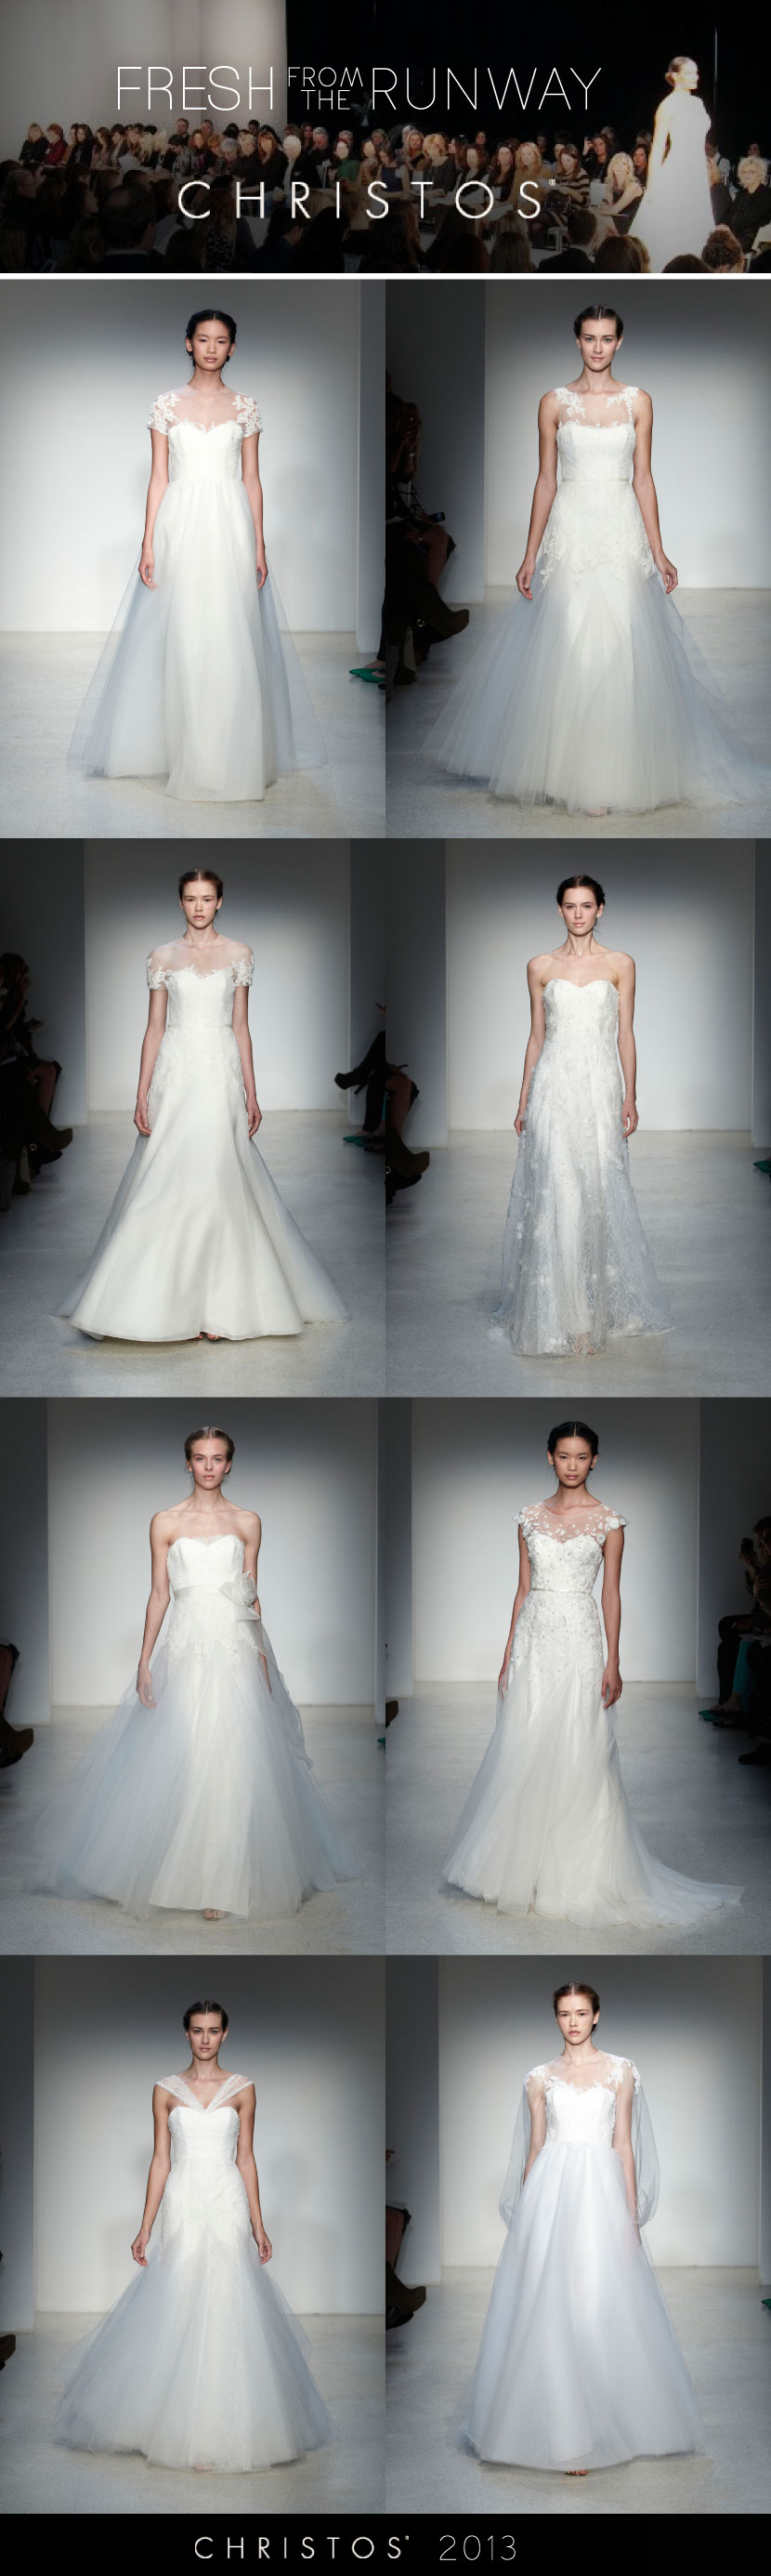 Christos Fall 2013 Bridal Collection: Exquisite Illusion | Brides of Oklahoma